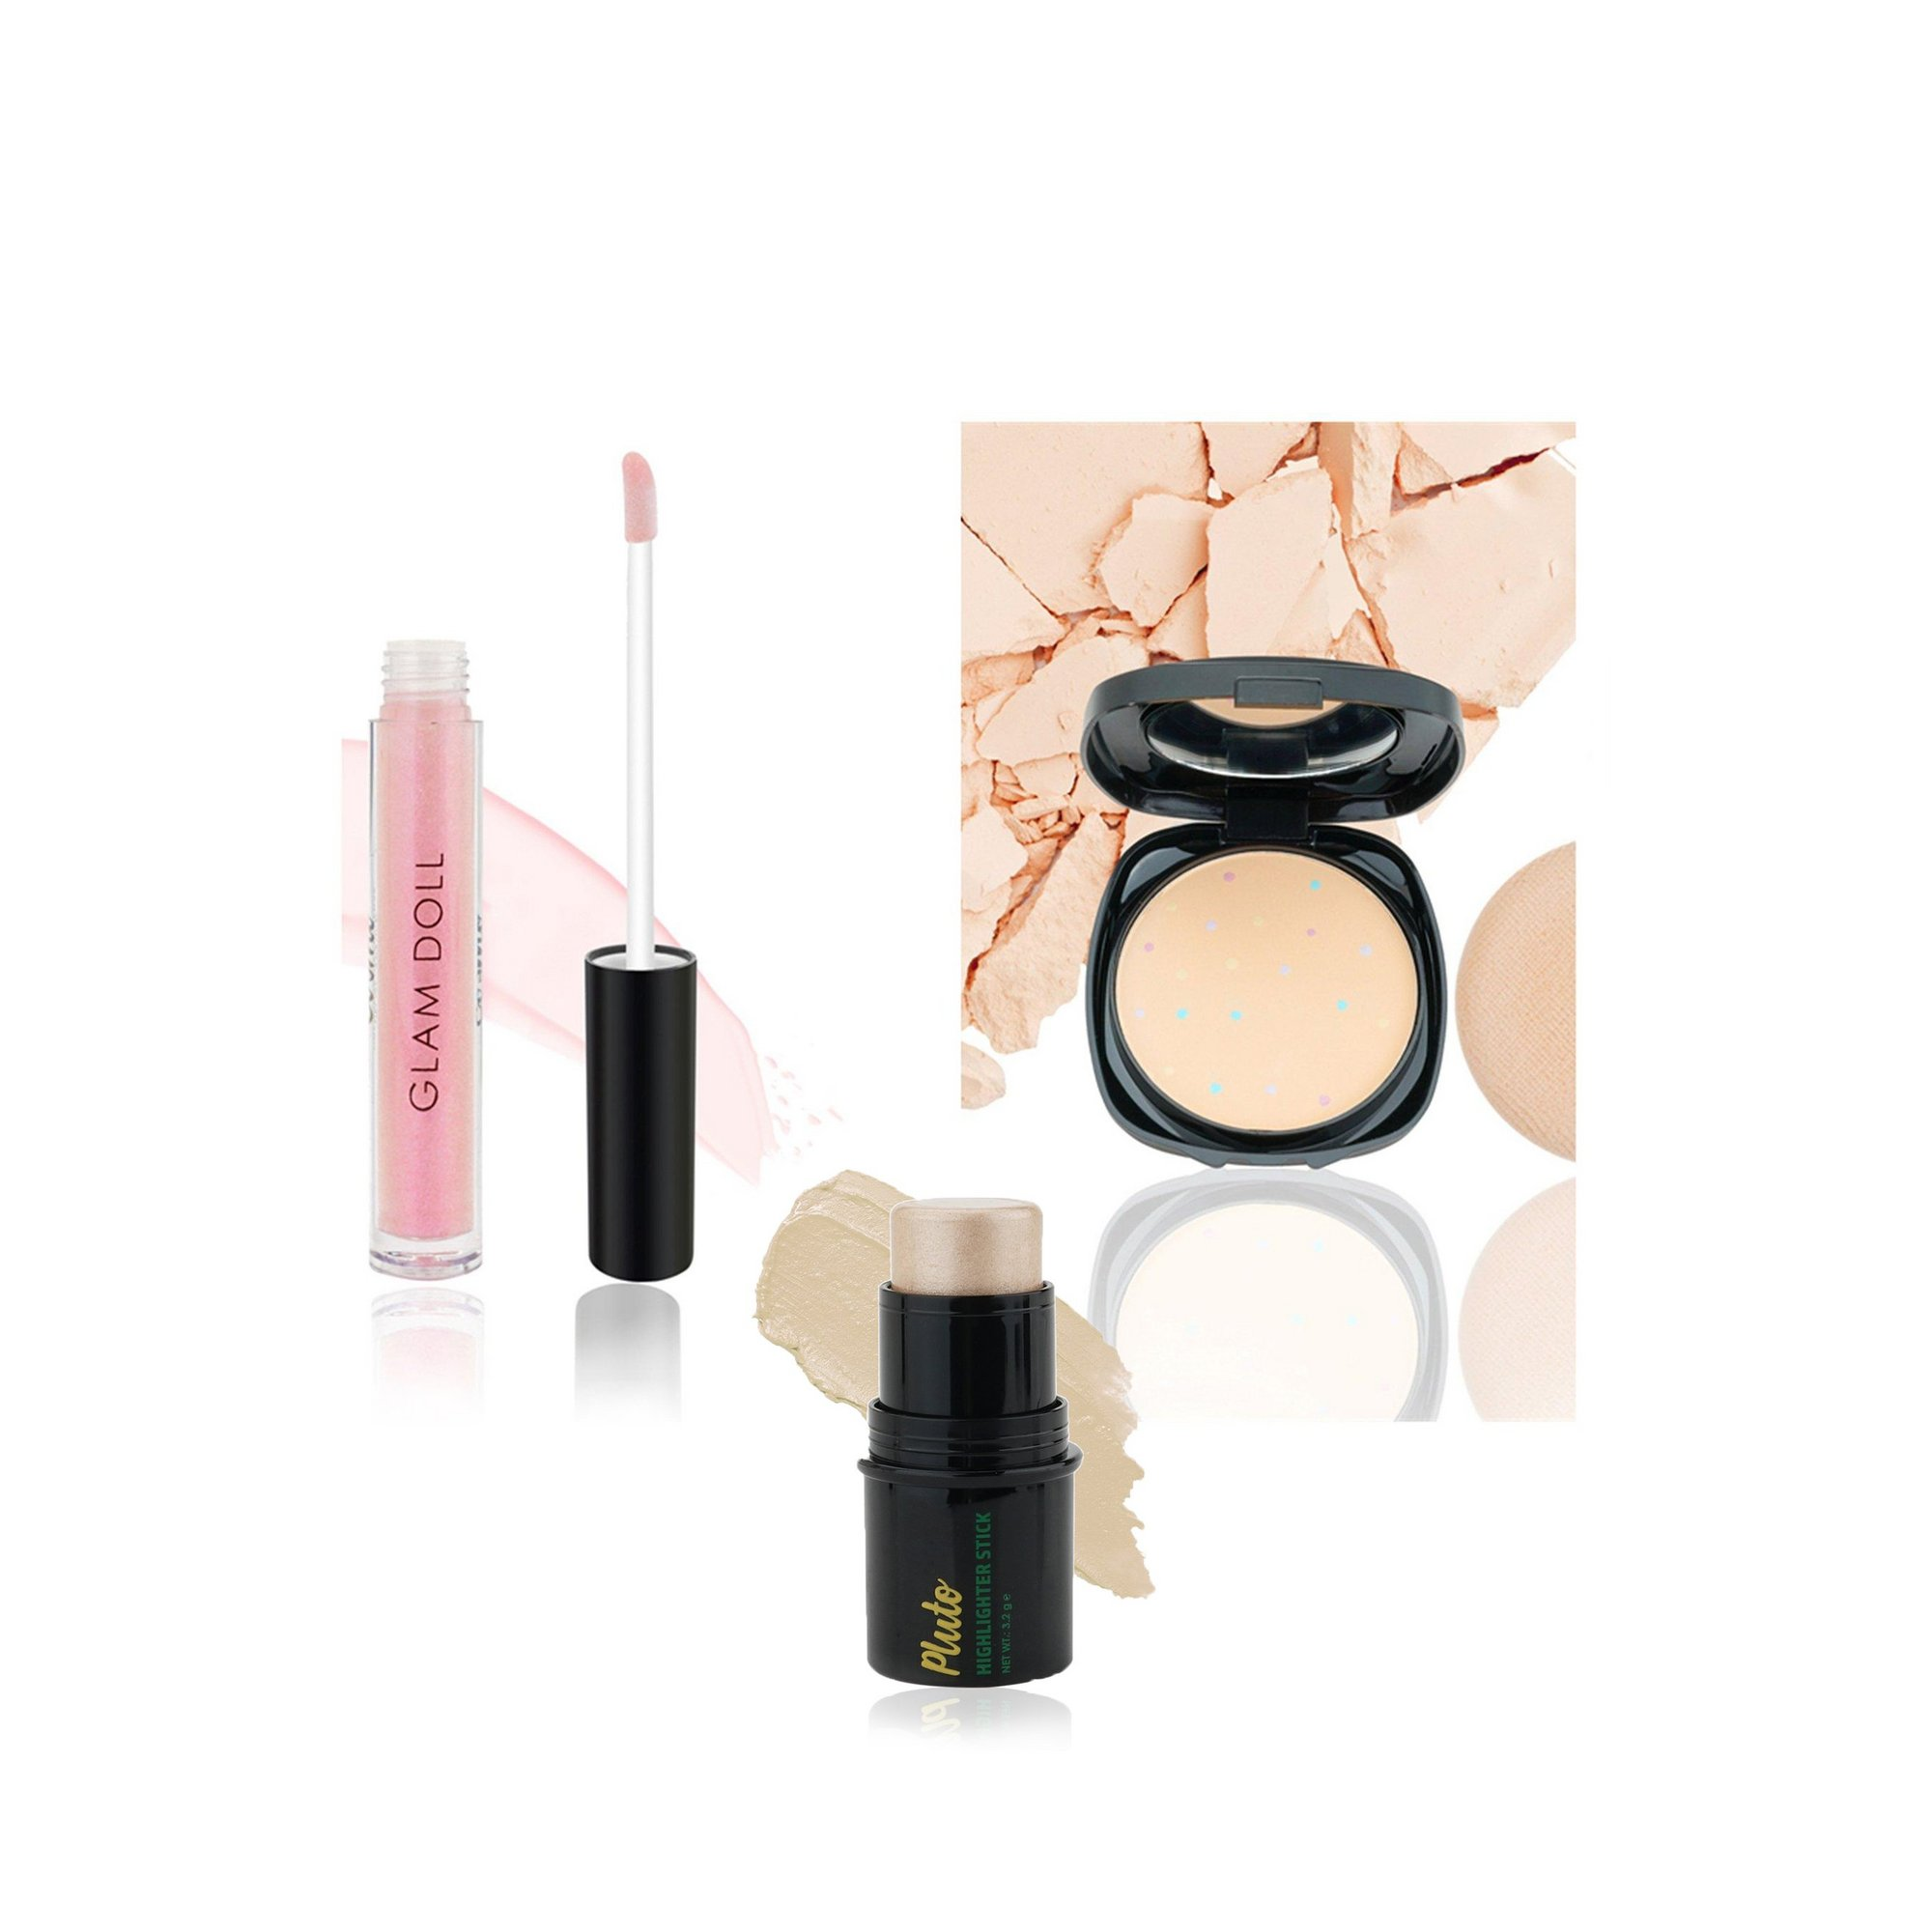 Image of Glam Doll Natural Cosmetic Collection